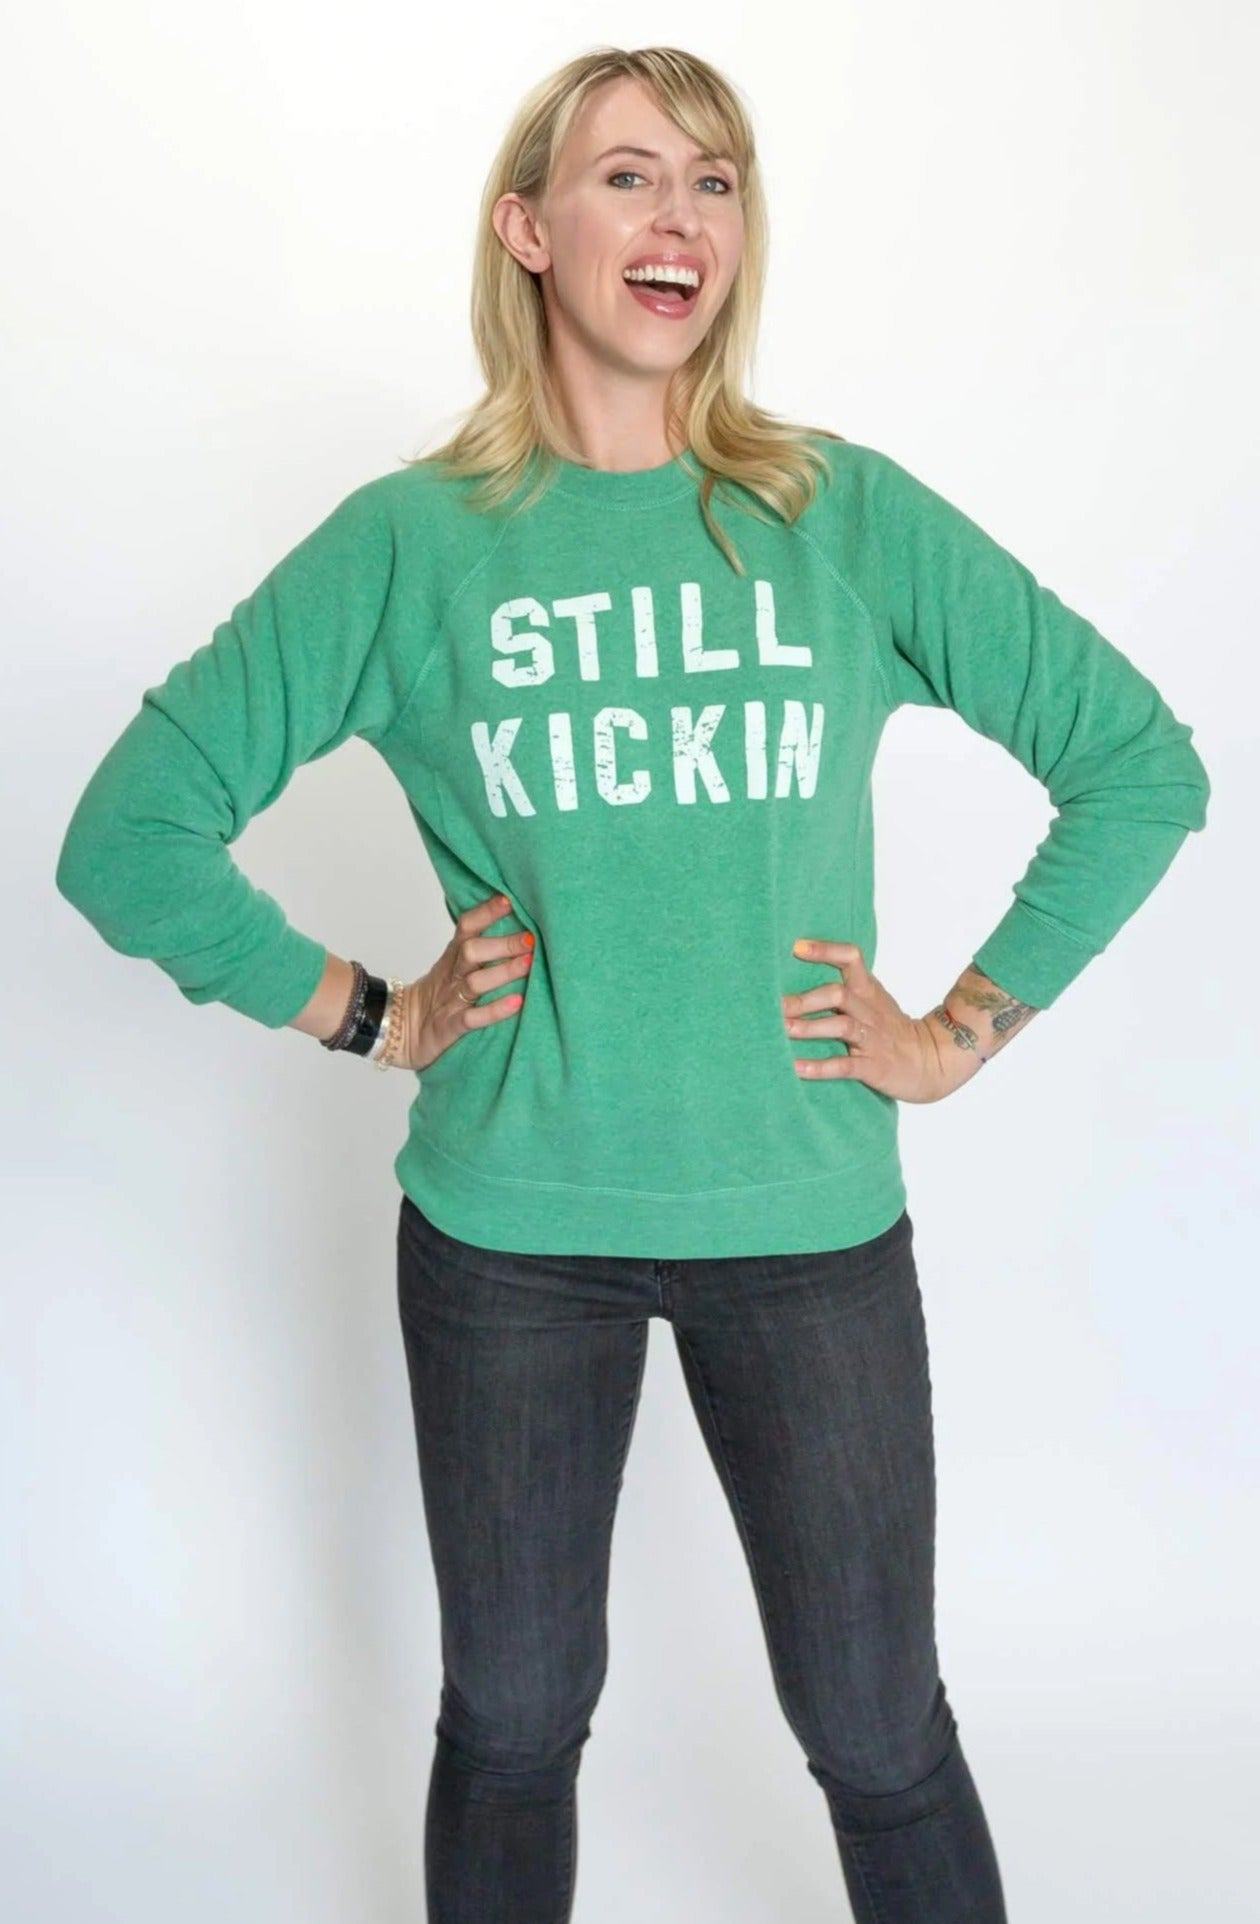 Nora McInerny wearing a green crewneck sweatshirt with Still Kickin printed in white print